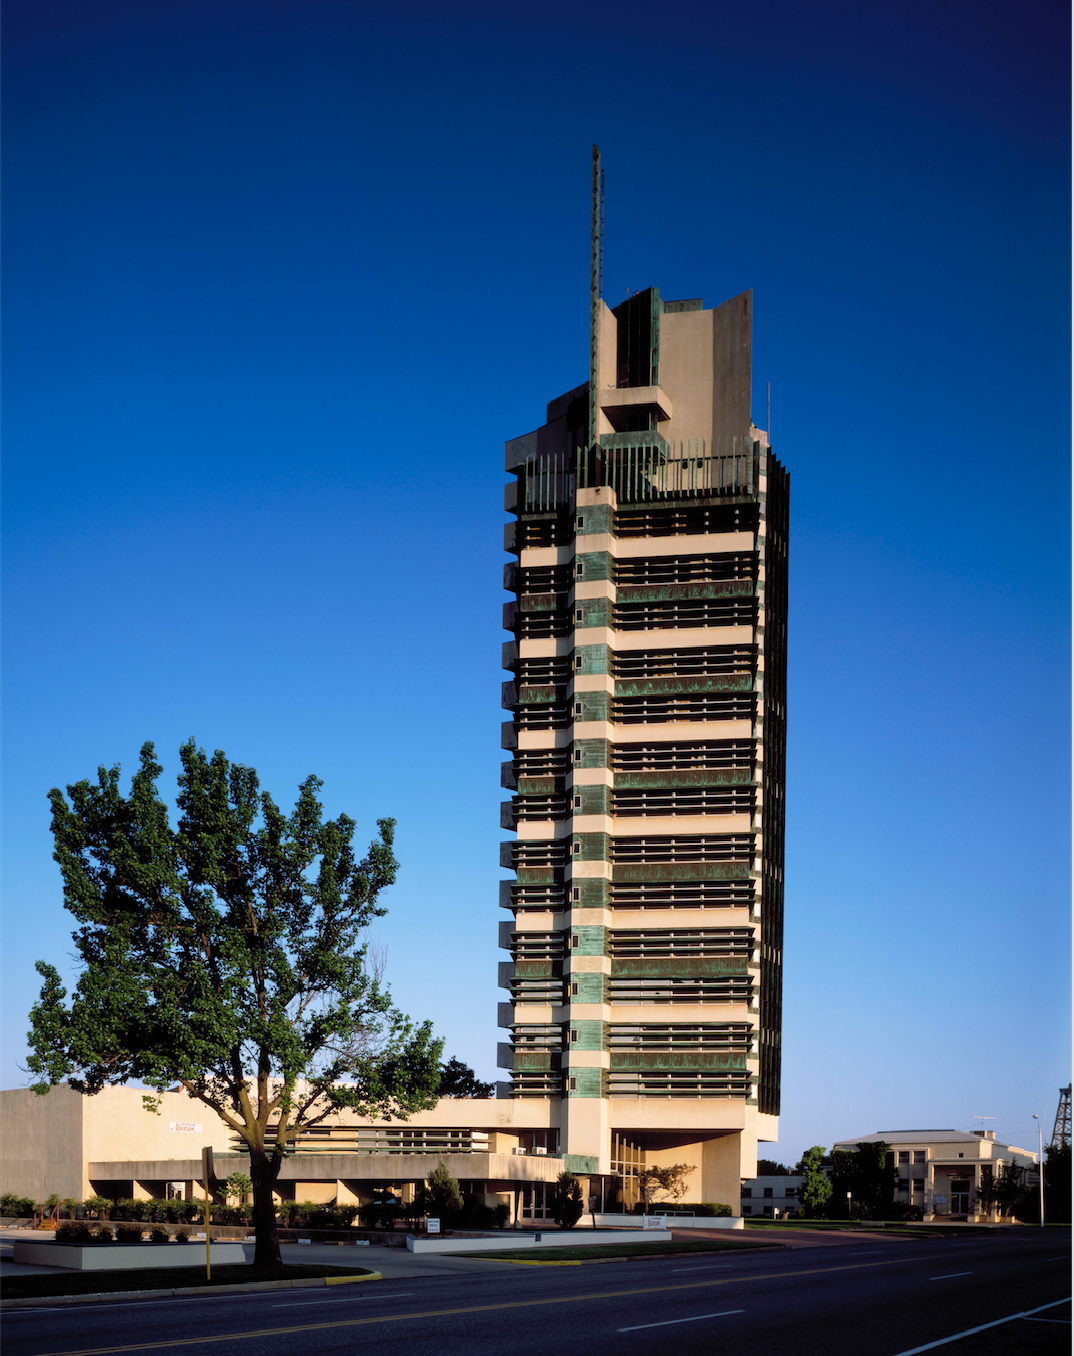 Price Tower, Bartlesville, OK, architect Frank Lloyd Wright, completed 1954.  [Public domain. Photographer Carol Highsmith, courtesy of Library of Congress.]